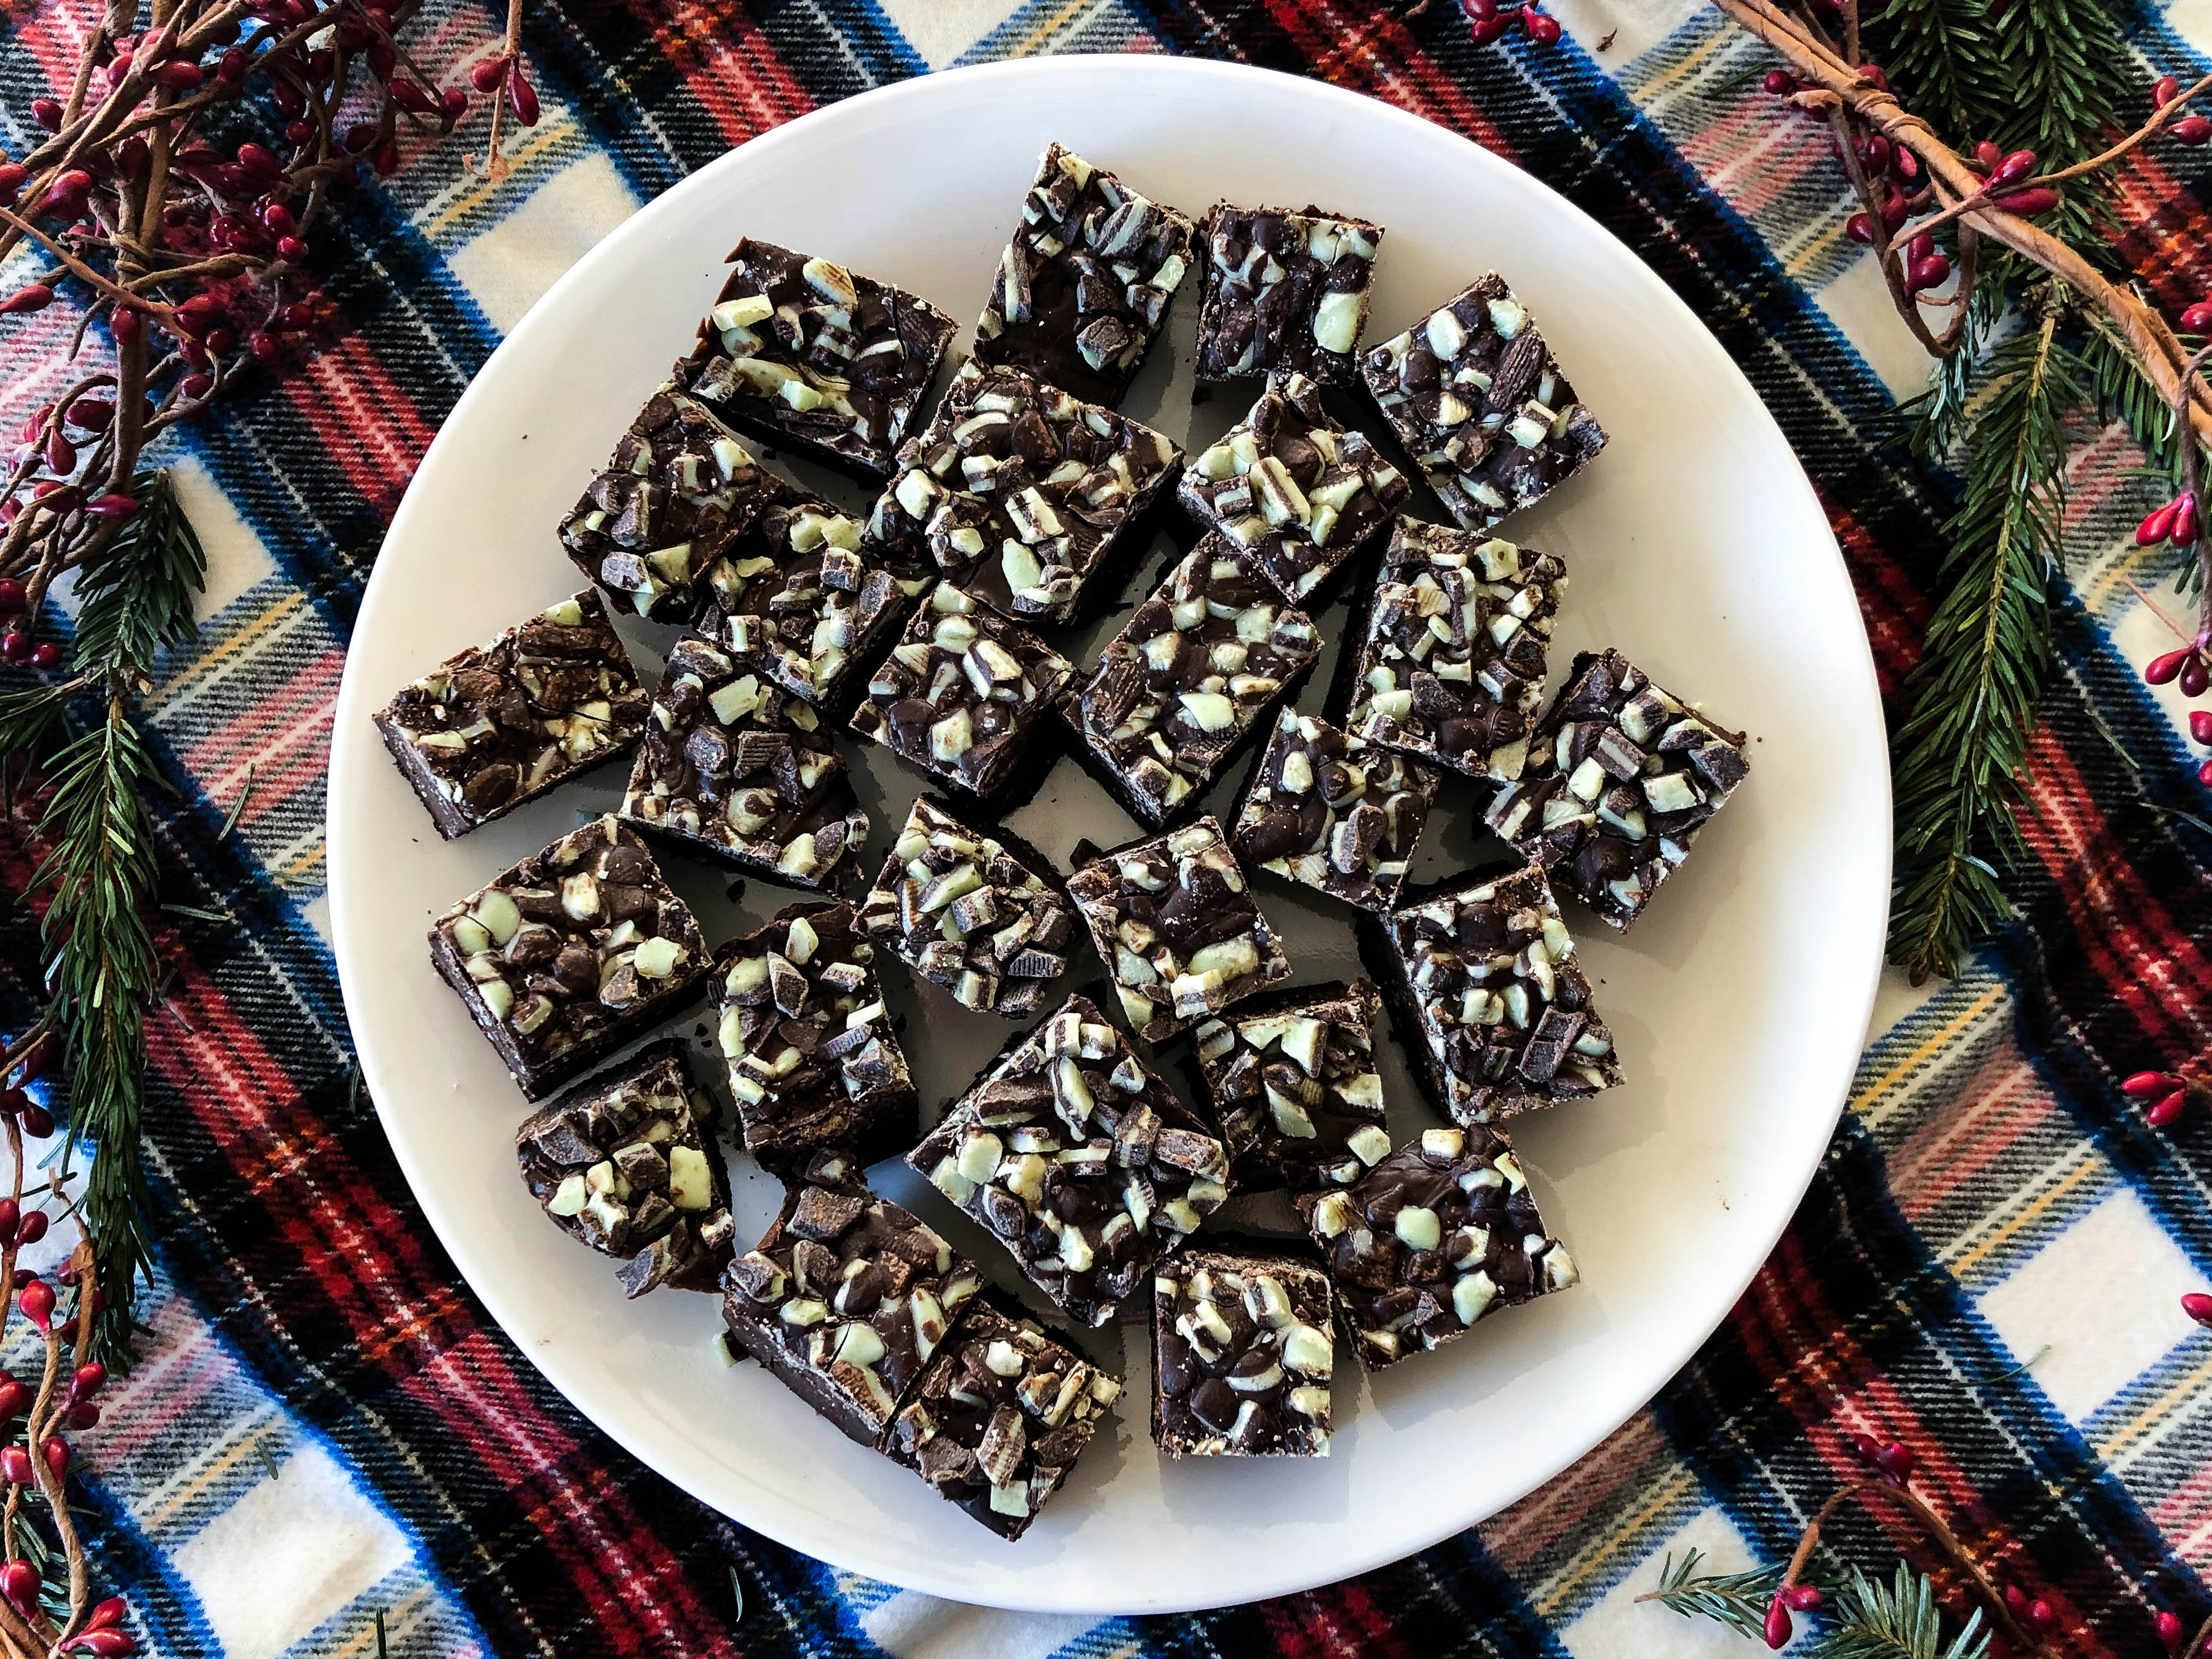 Chocolate fudge squares in a white plate